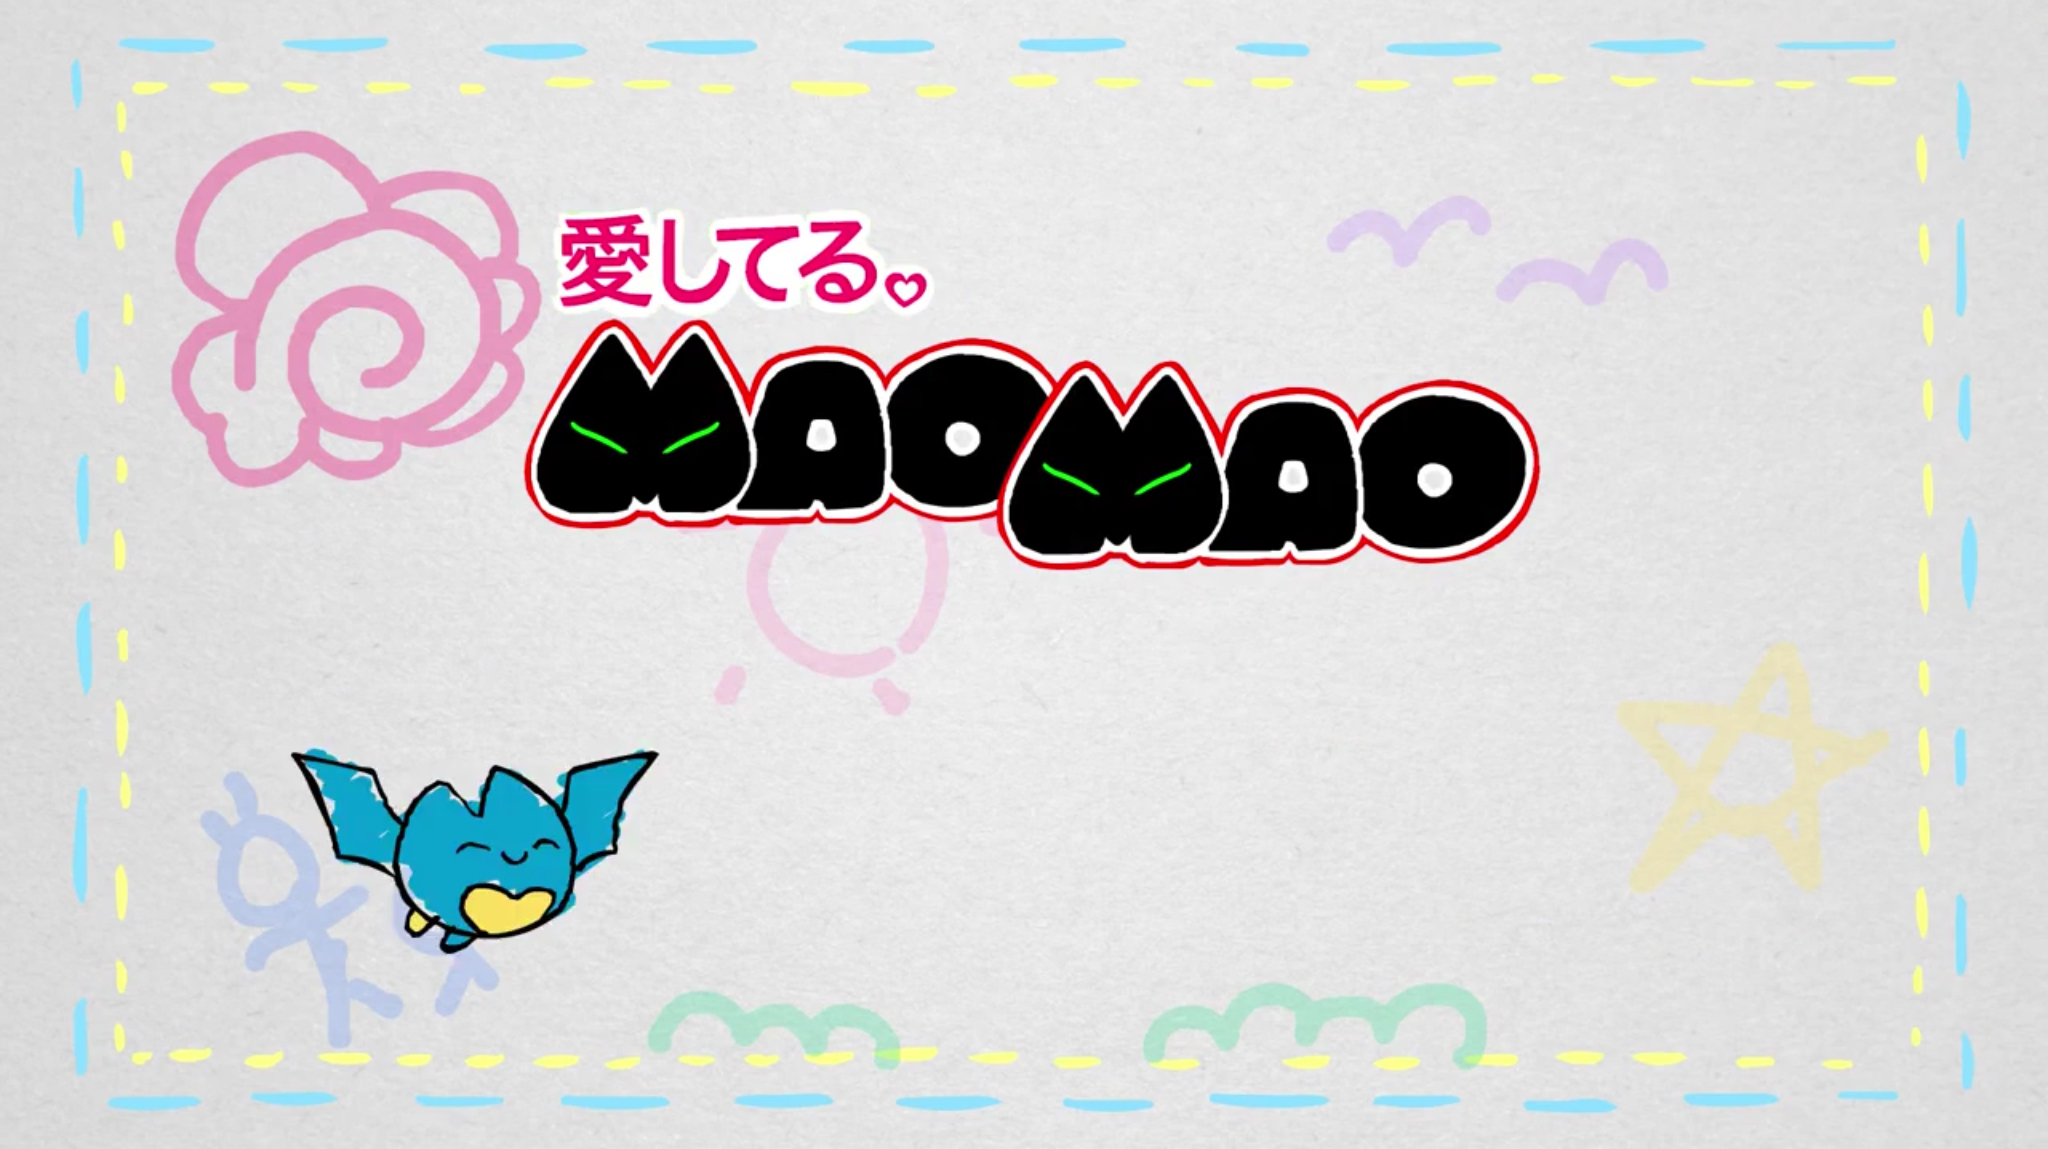 Category A To Z Mao Mao Heroes Of Pure Heart Wiki Fandom Check out inspiring examples of adorabat artwork on deviantart, and get inspired by our community of talented artists. mao mao heroes of pure heart wiki